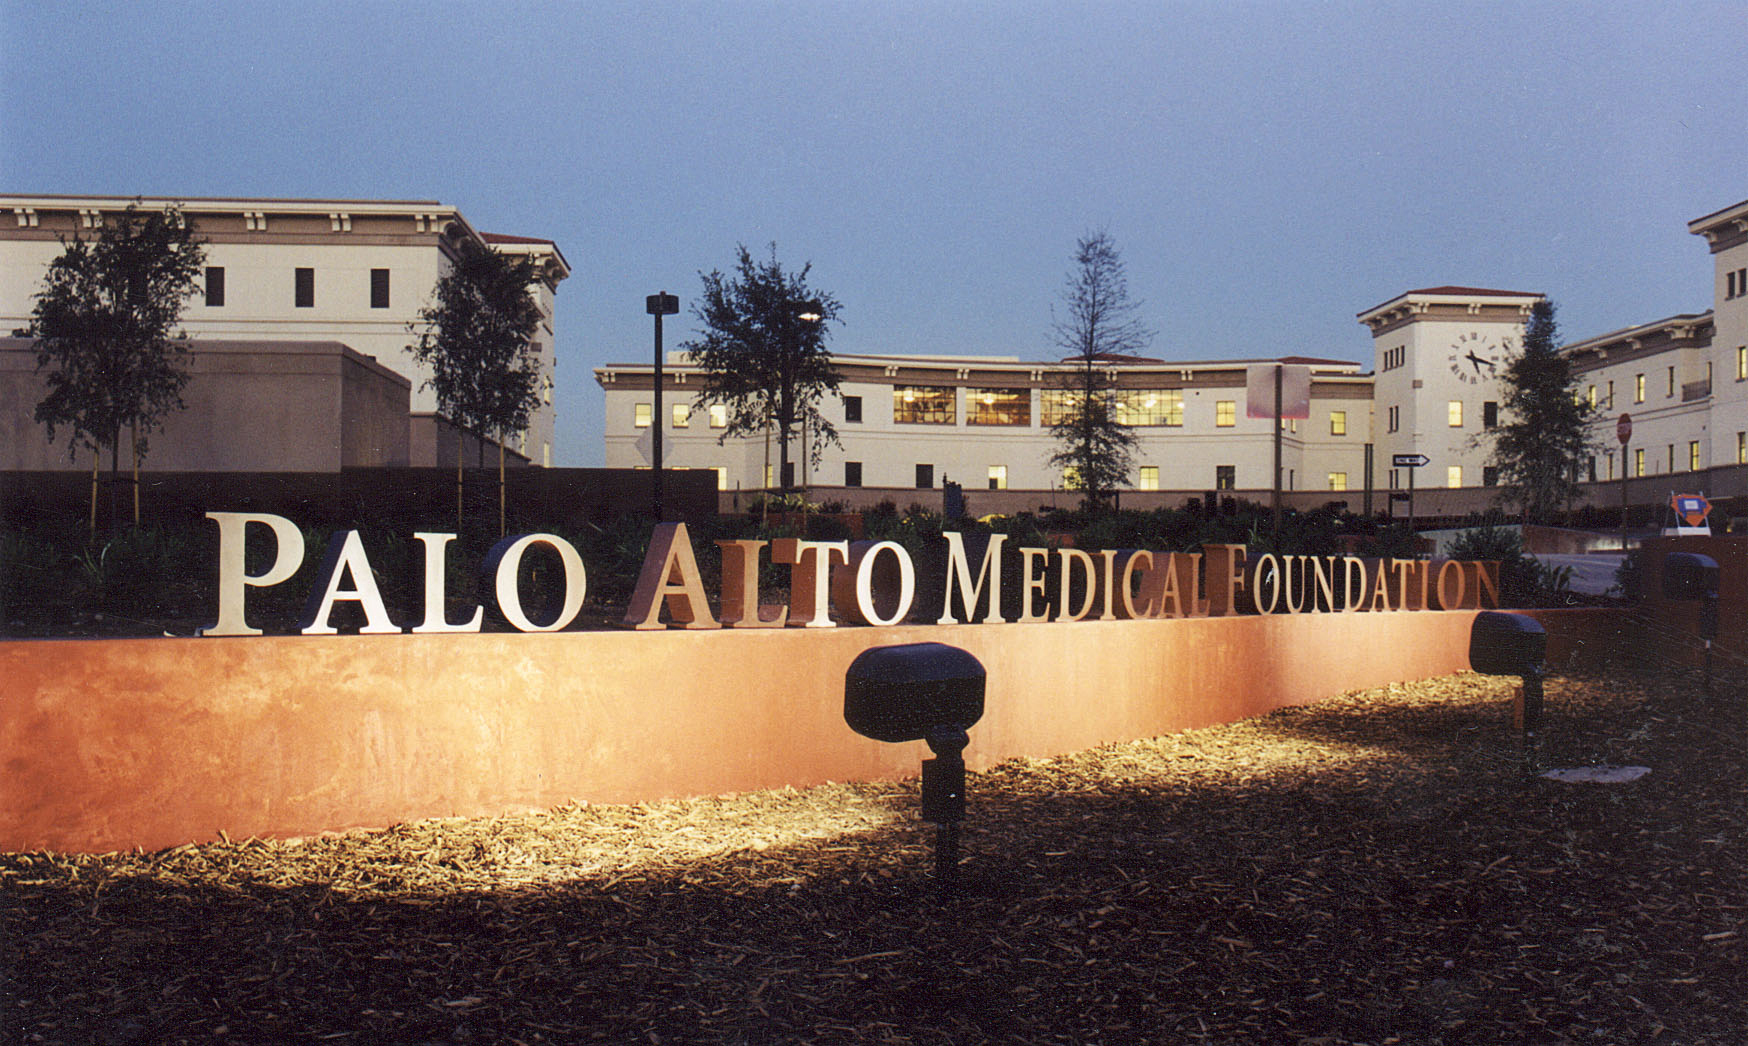 Palo Alto Medical Foundation - Wikipedia